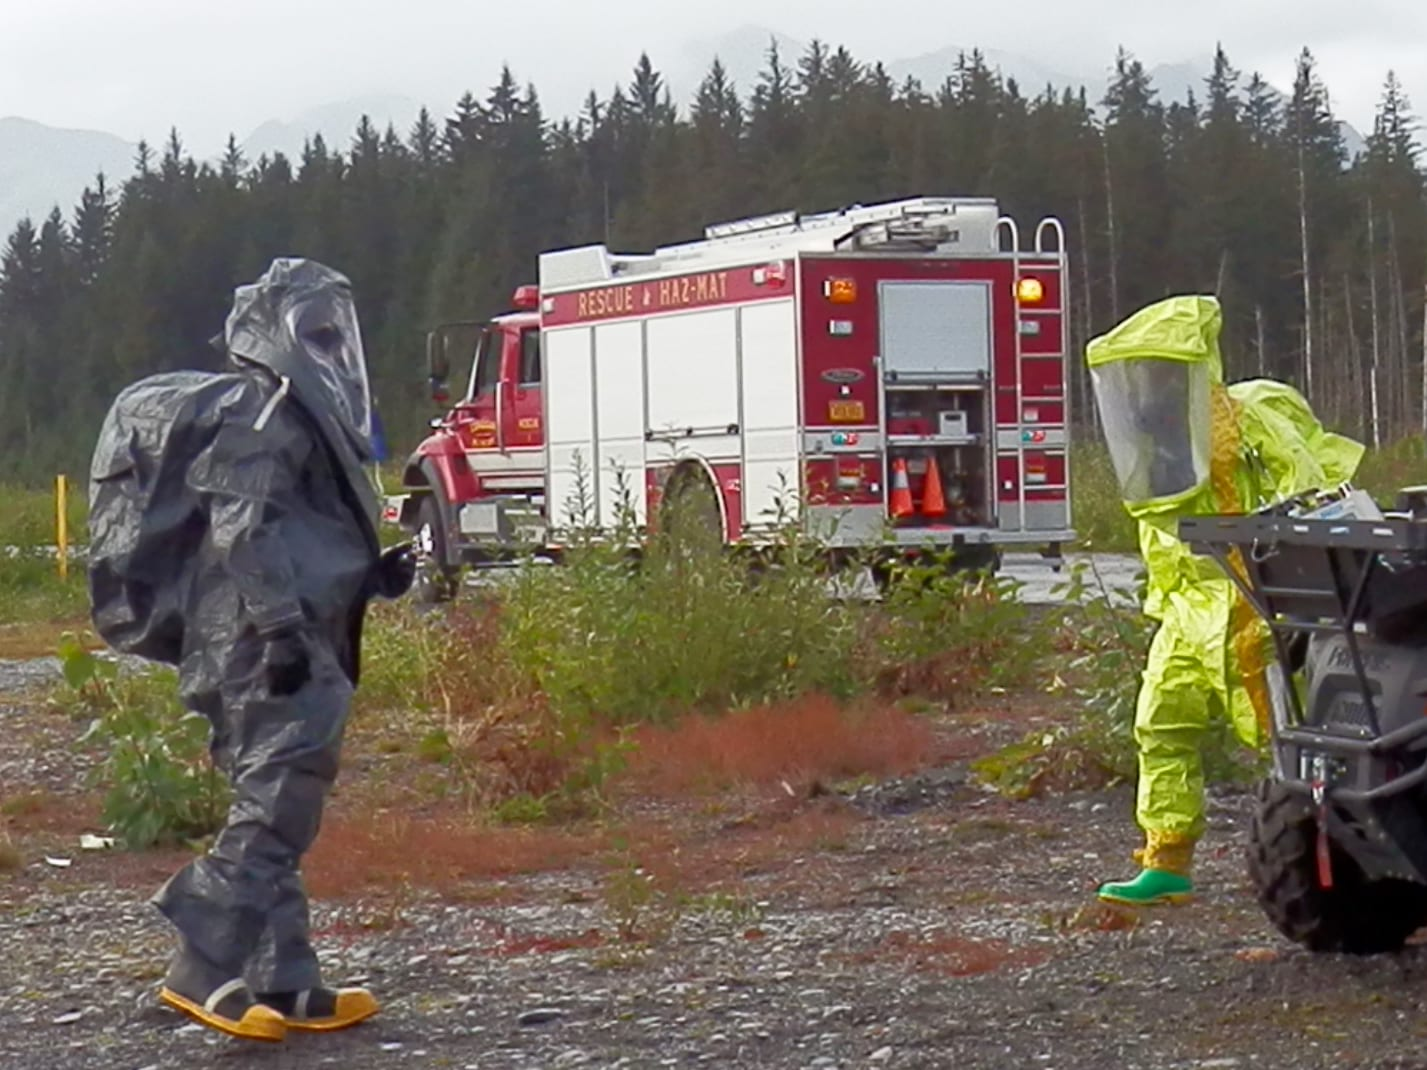 Cordova Volunteer Fire Department's Dustin Solberg, right, noted in the After Action Report on that emergency preparedness exercise that he was surprised how many people it took to support him in the decontamination hazmat suit as he searched for simulated cyanide victims. Photo by Mike Hicks/For The Cordova Times